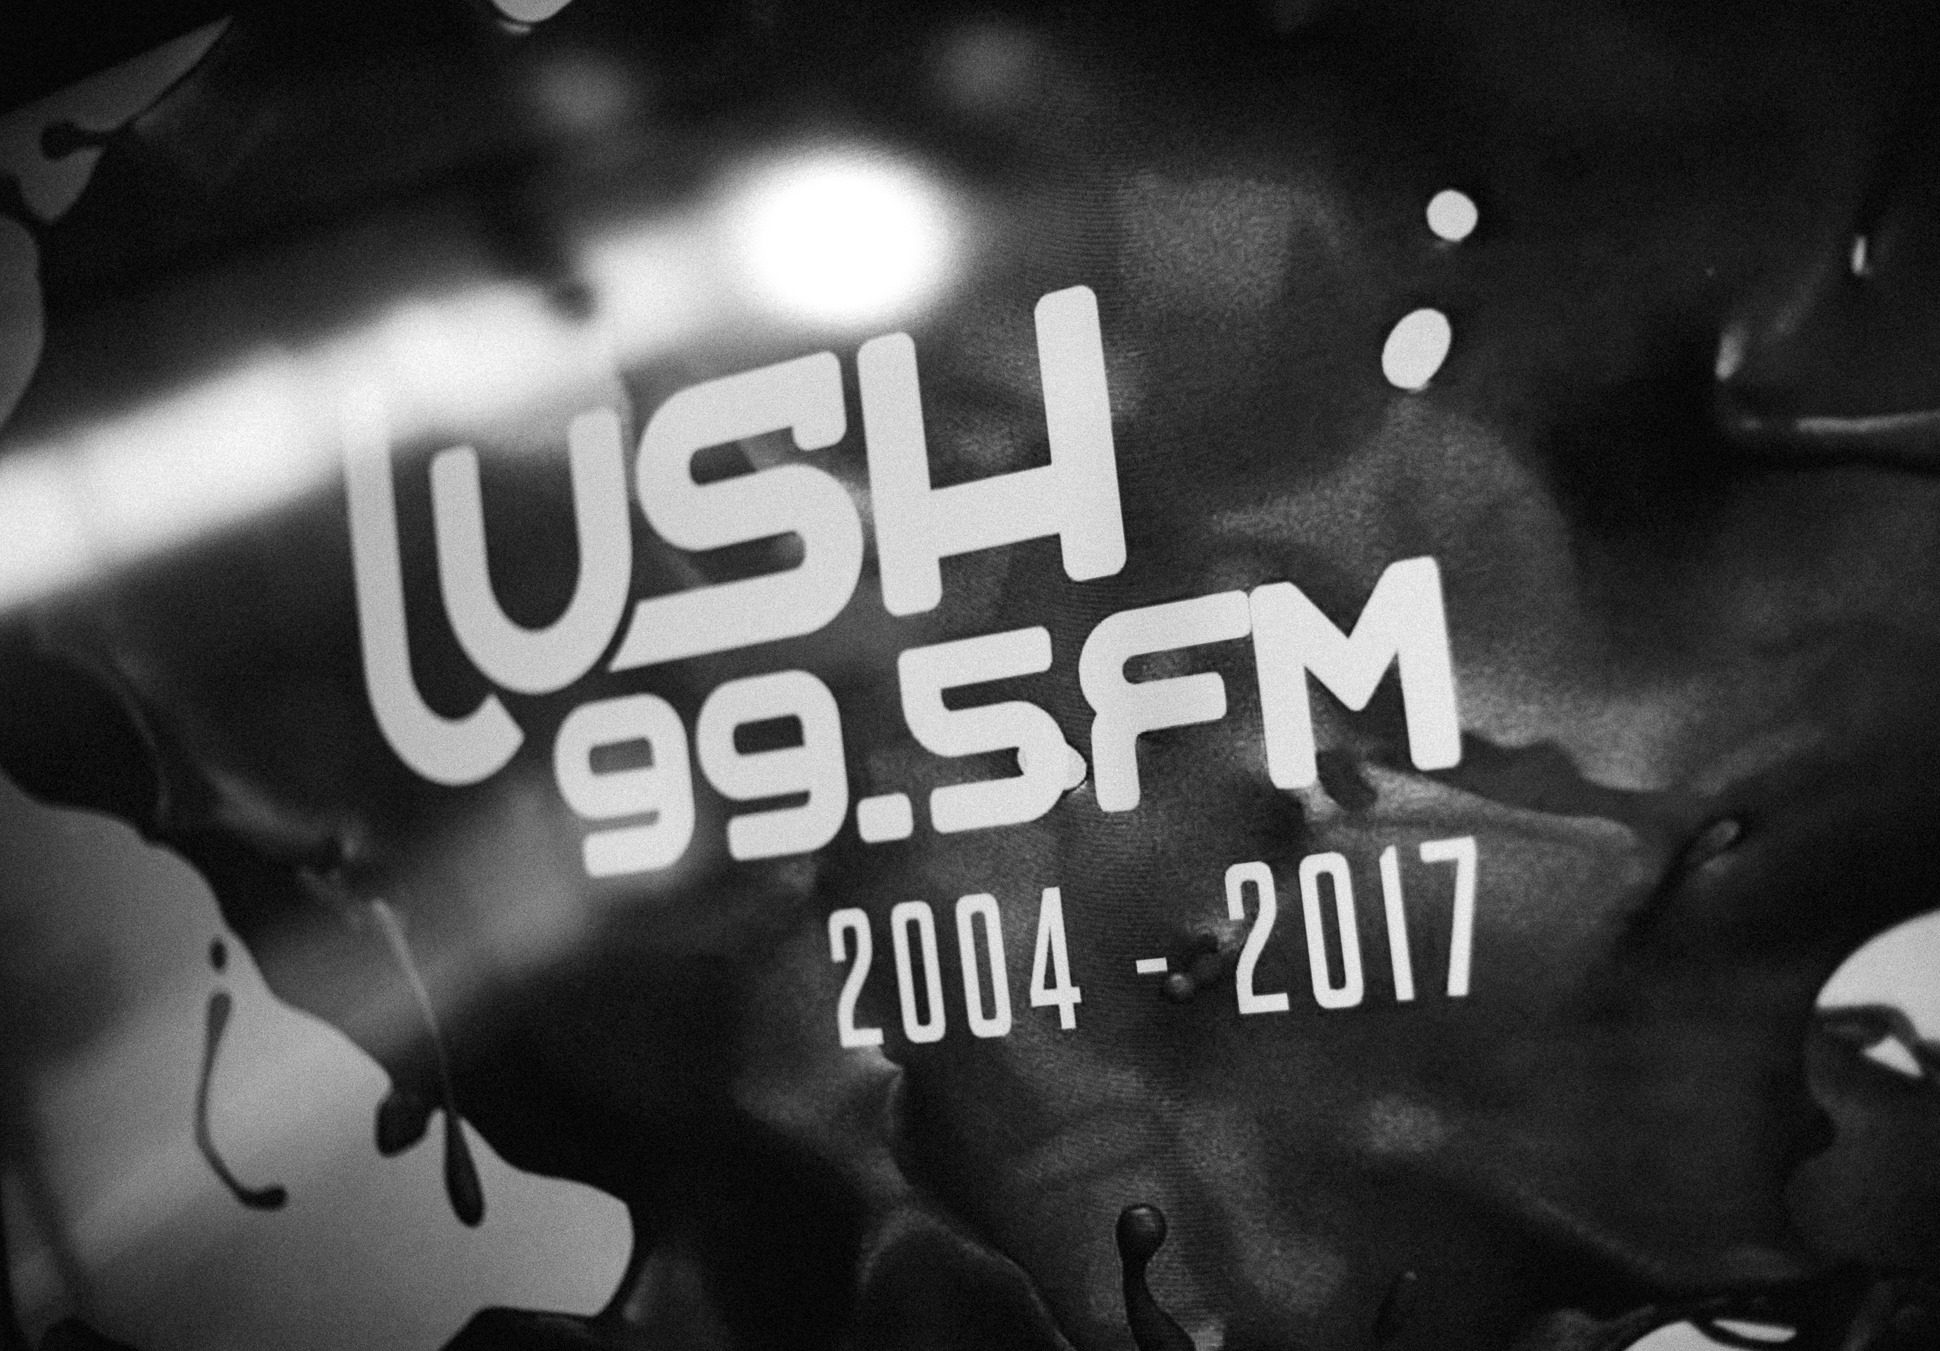 Bidding goodbye to Lush 99.5FM 6ca788642cdf7